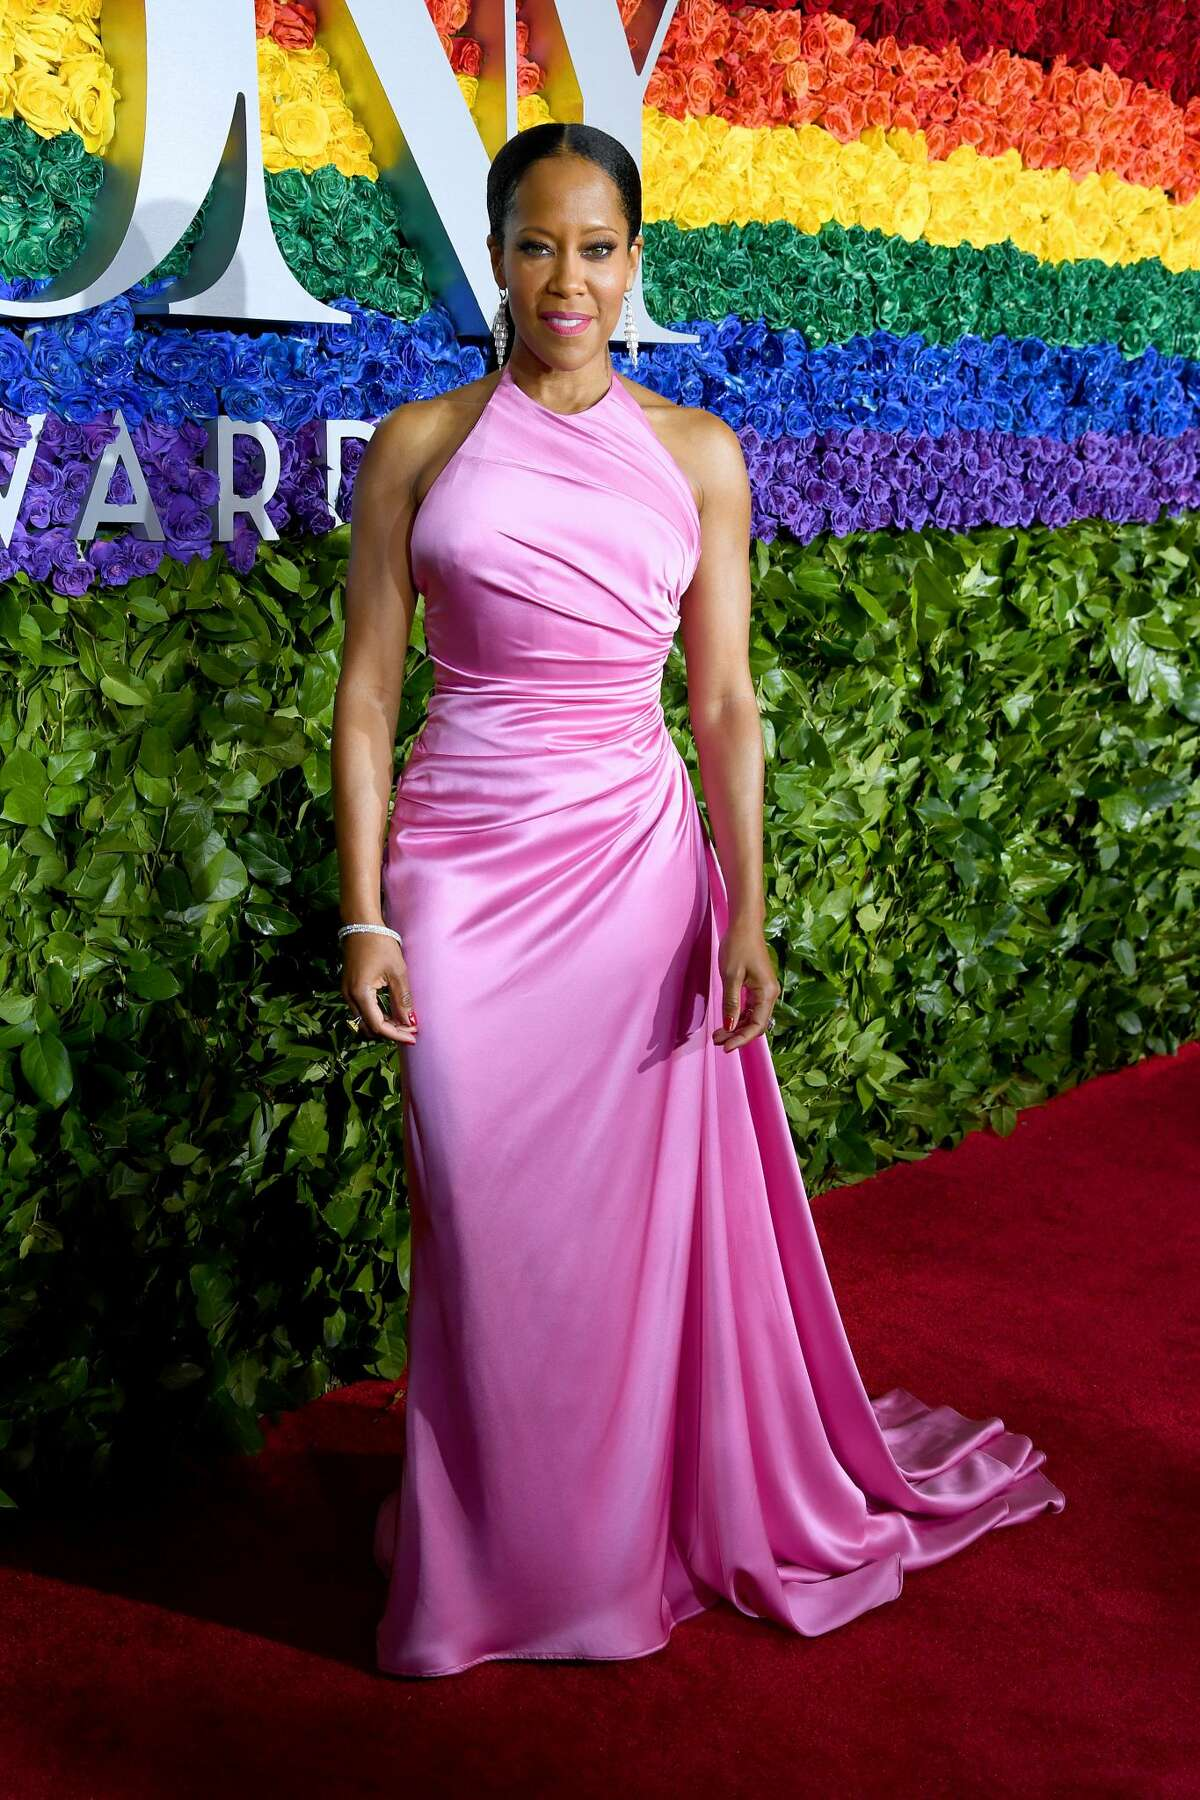 NEW YORK, NEW YORK - JUNE 09: Regina King attends the 73rd Annual Tony Awards at Radio City Music Hall on June 09, 2019 in New York City. (Photo by Kevin Mazur/Getty Images for Tony Awards Productions)